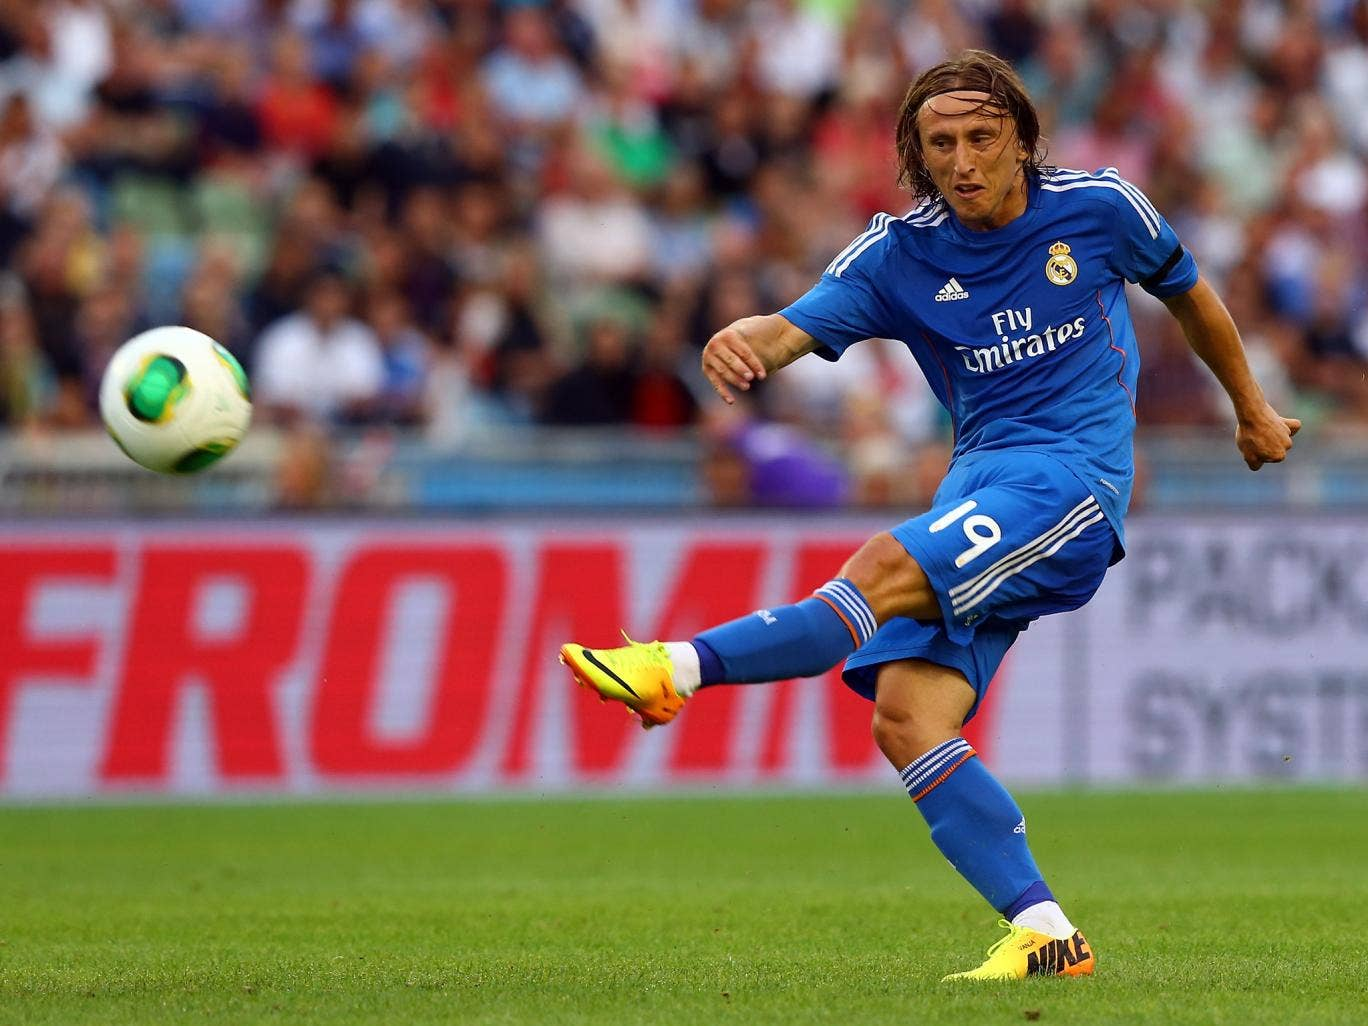 Luka Modric in pre-season action for Real Madrid in Sweden